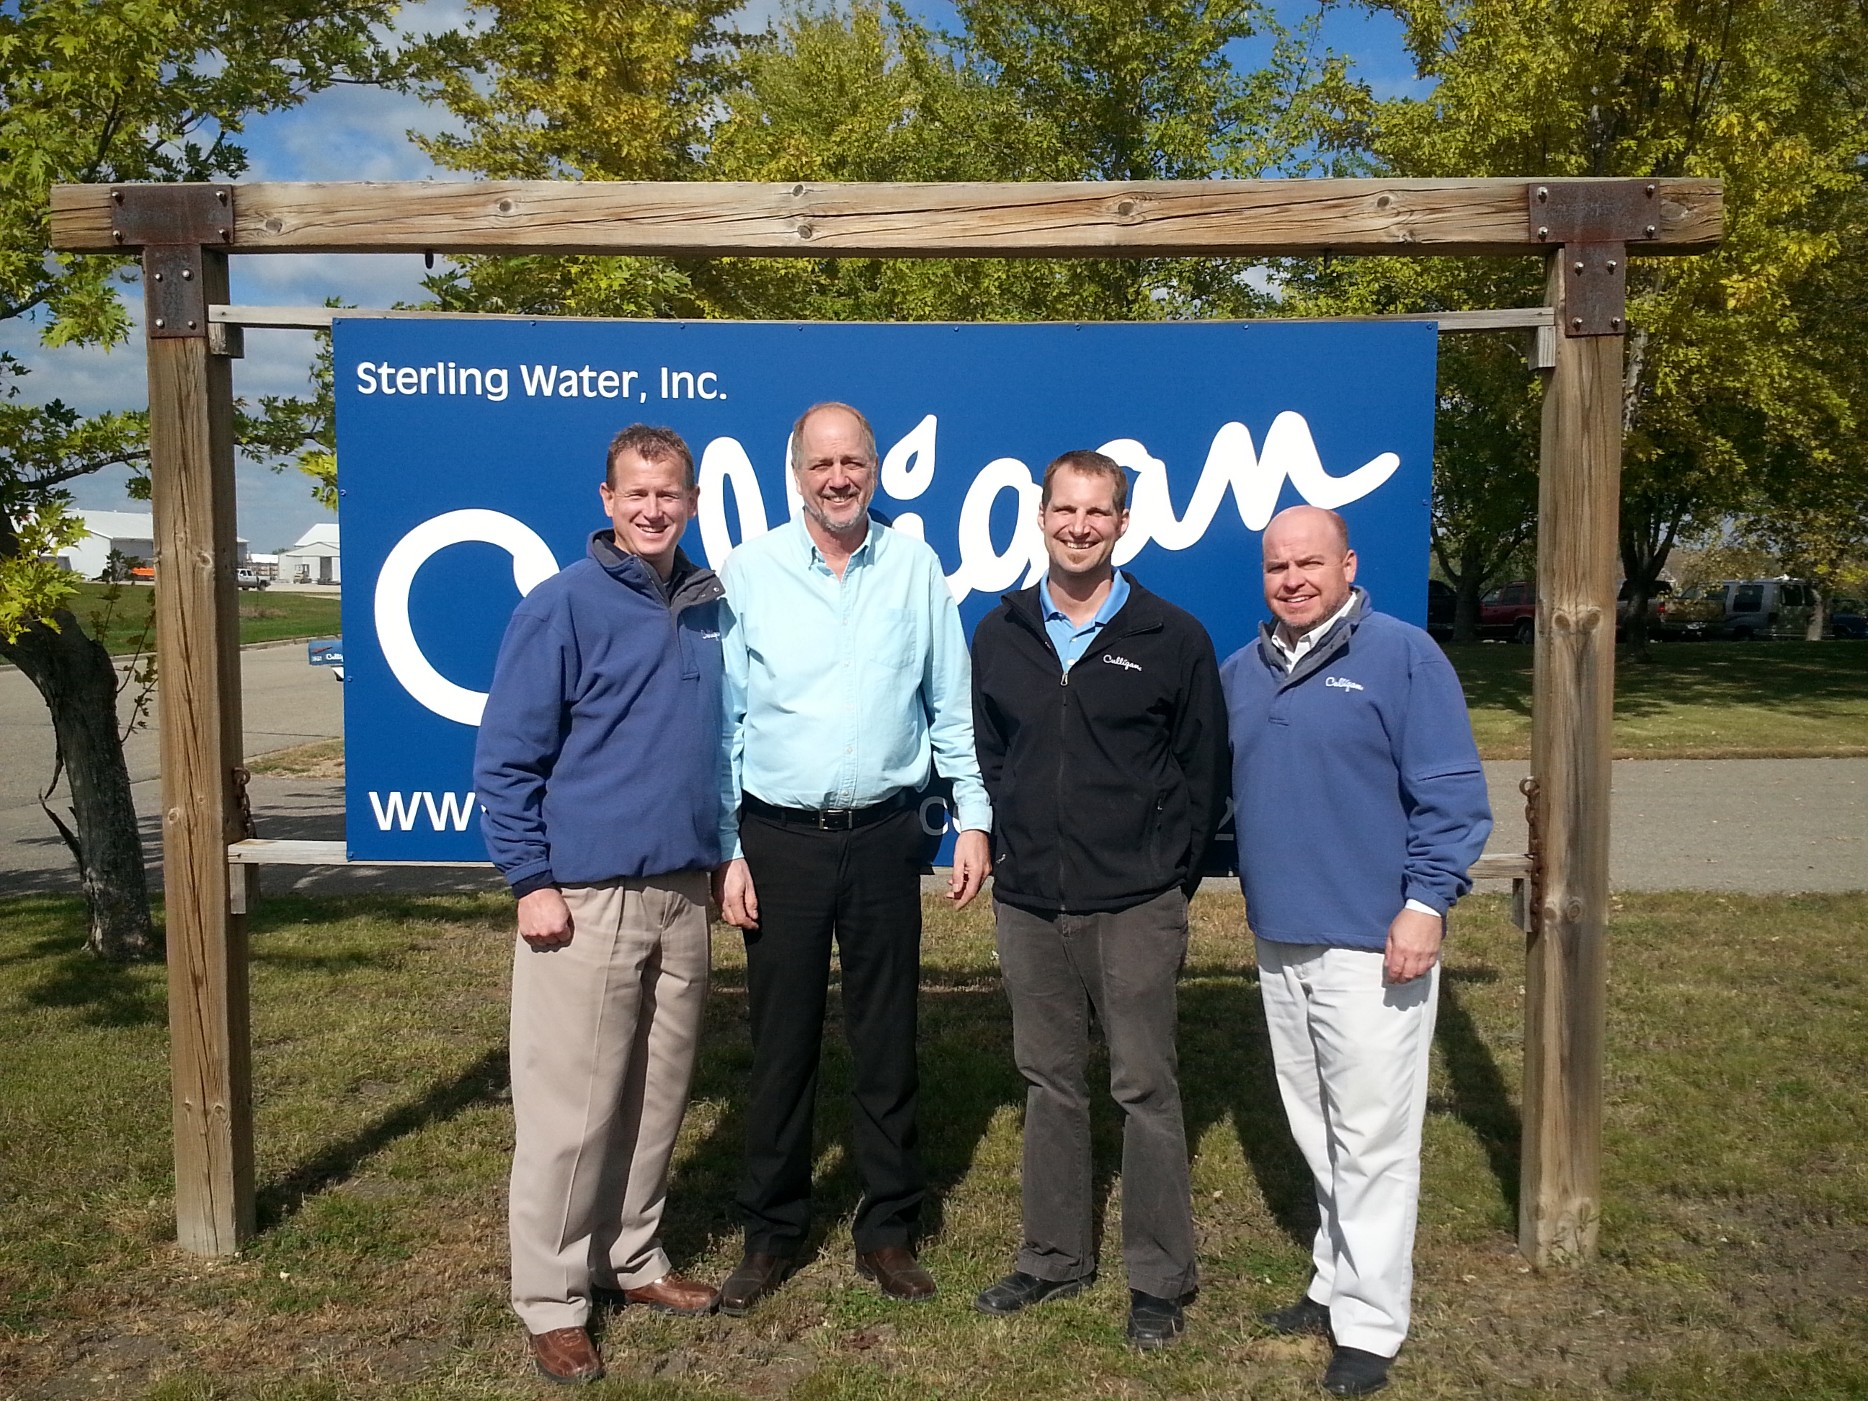 sterling water culligan general managers